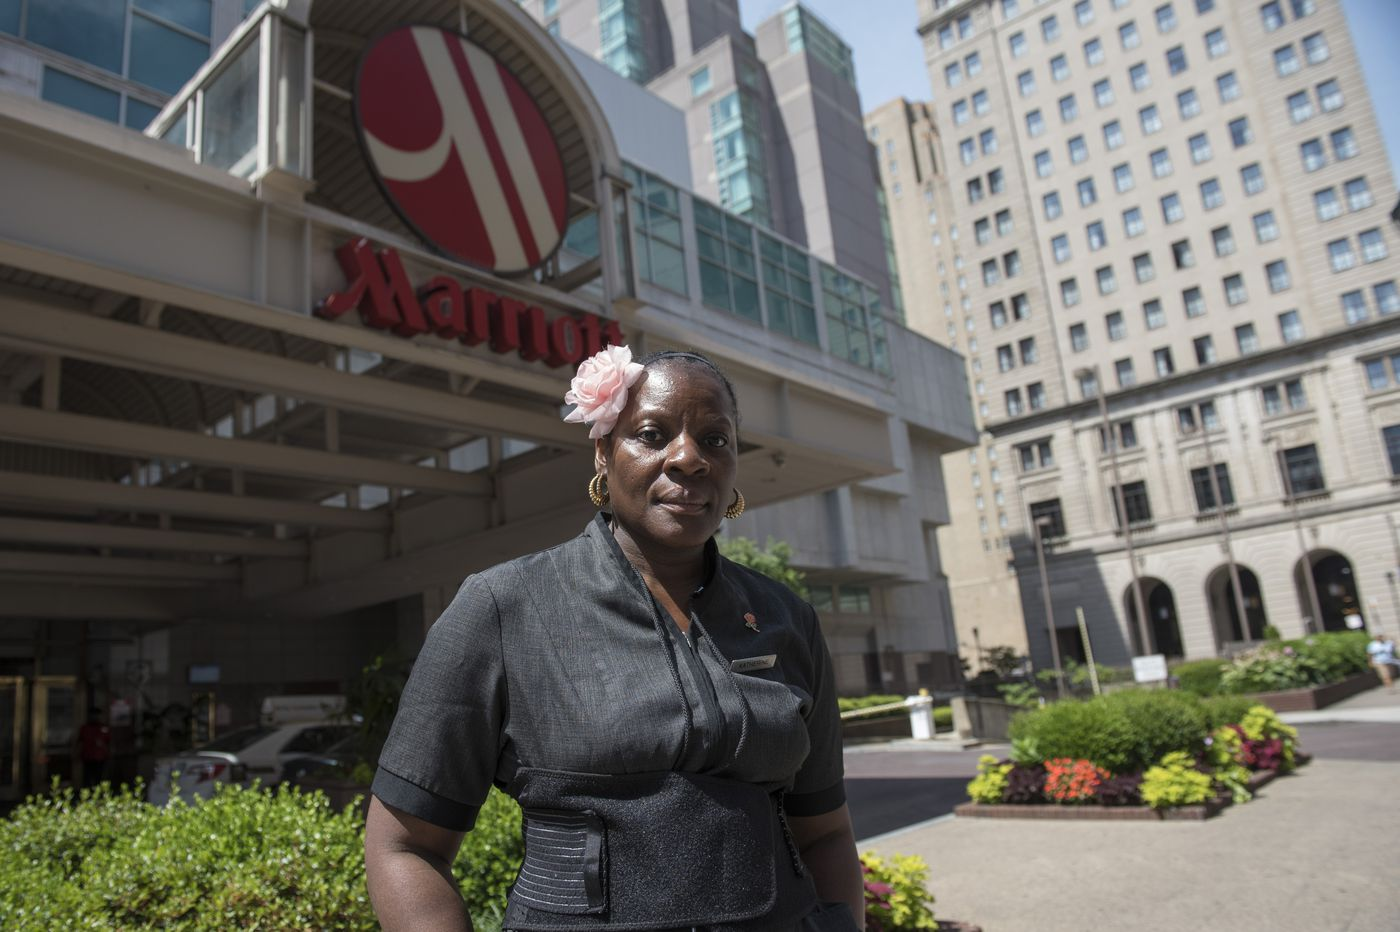 Hotel housekeeping on demand: Marriott cleaners say this app makes their job harder